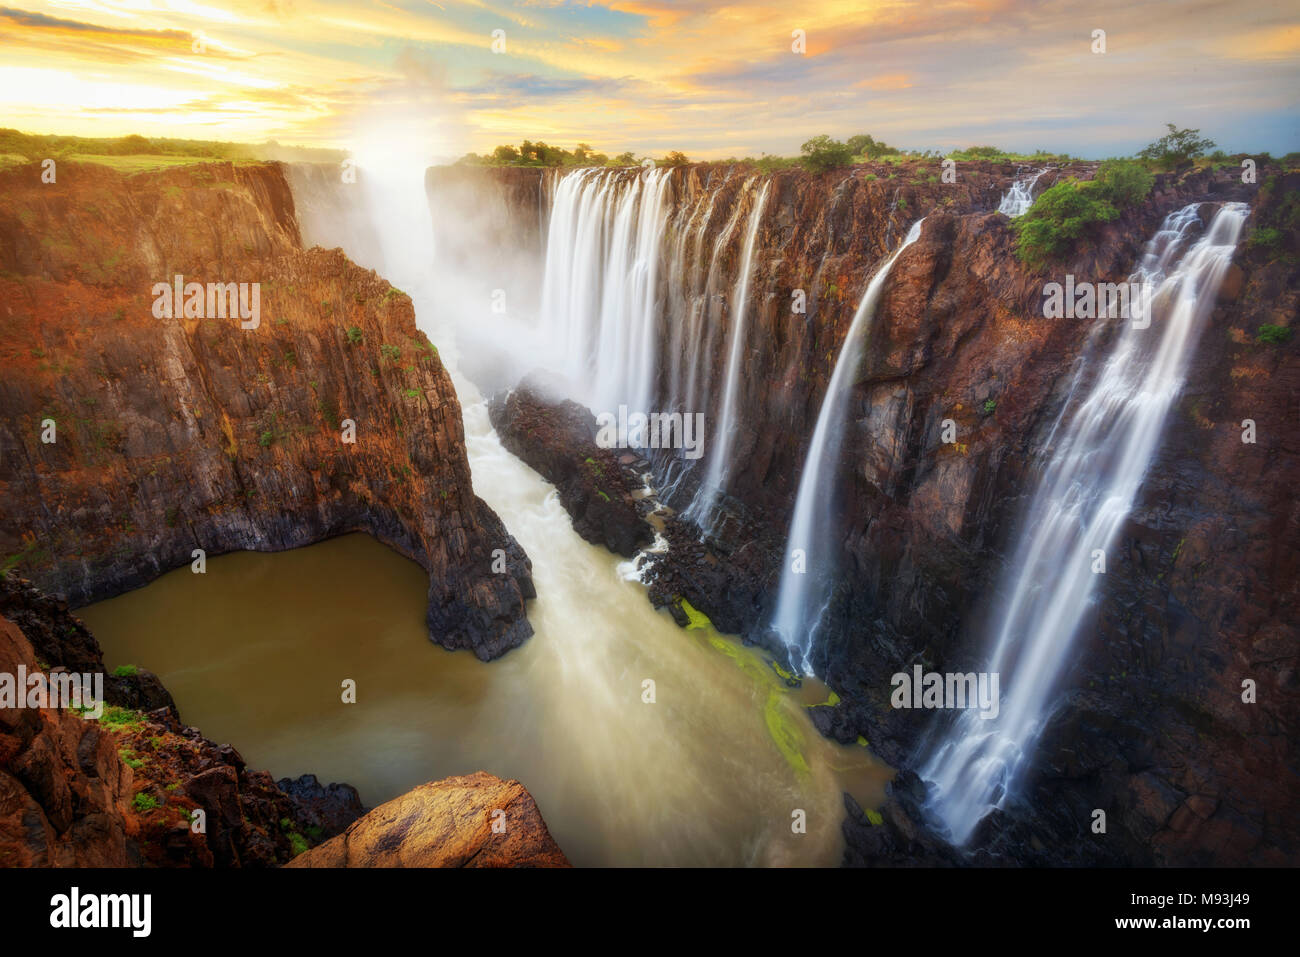 Victoria Falls in Zambia and Zimbabwe taken in 2015 - Stock Image